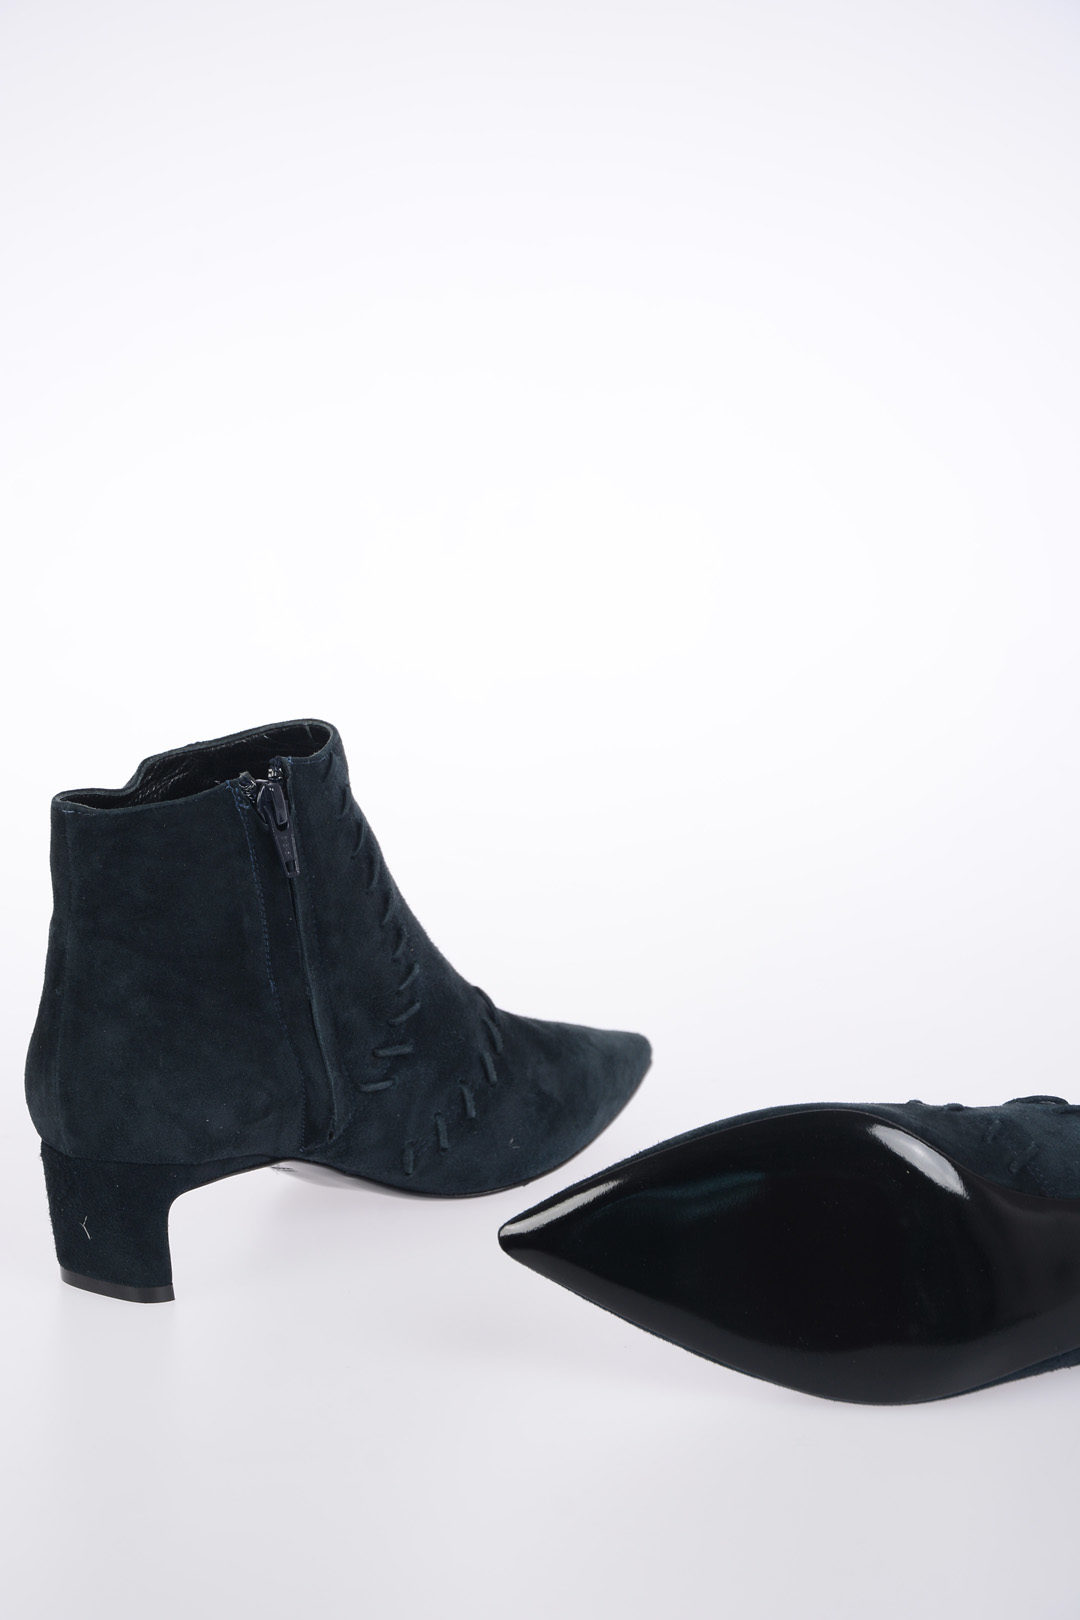 Suede 5 Glamood Donna In Stivaletti Drome Outlet Cm 4 dBQCWerxo